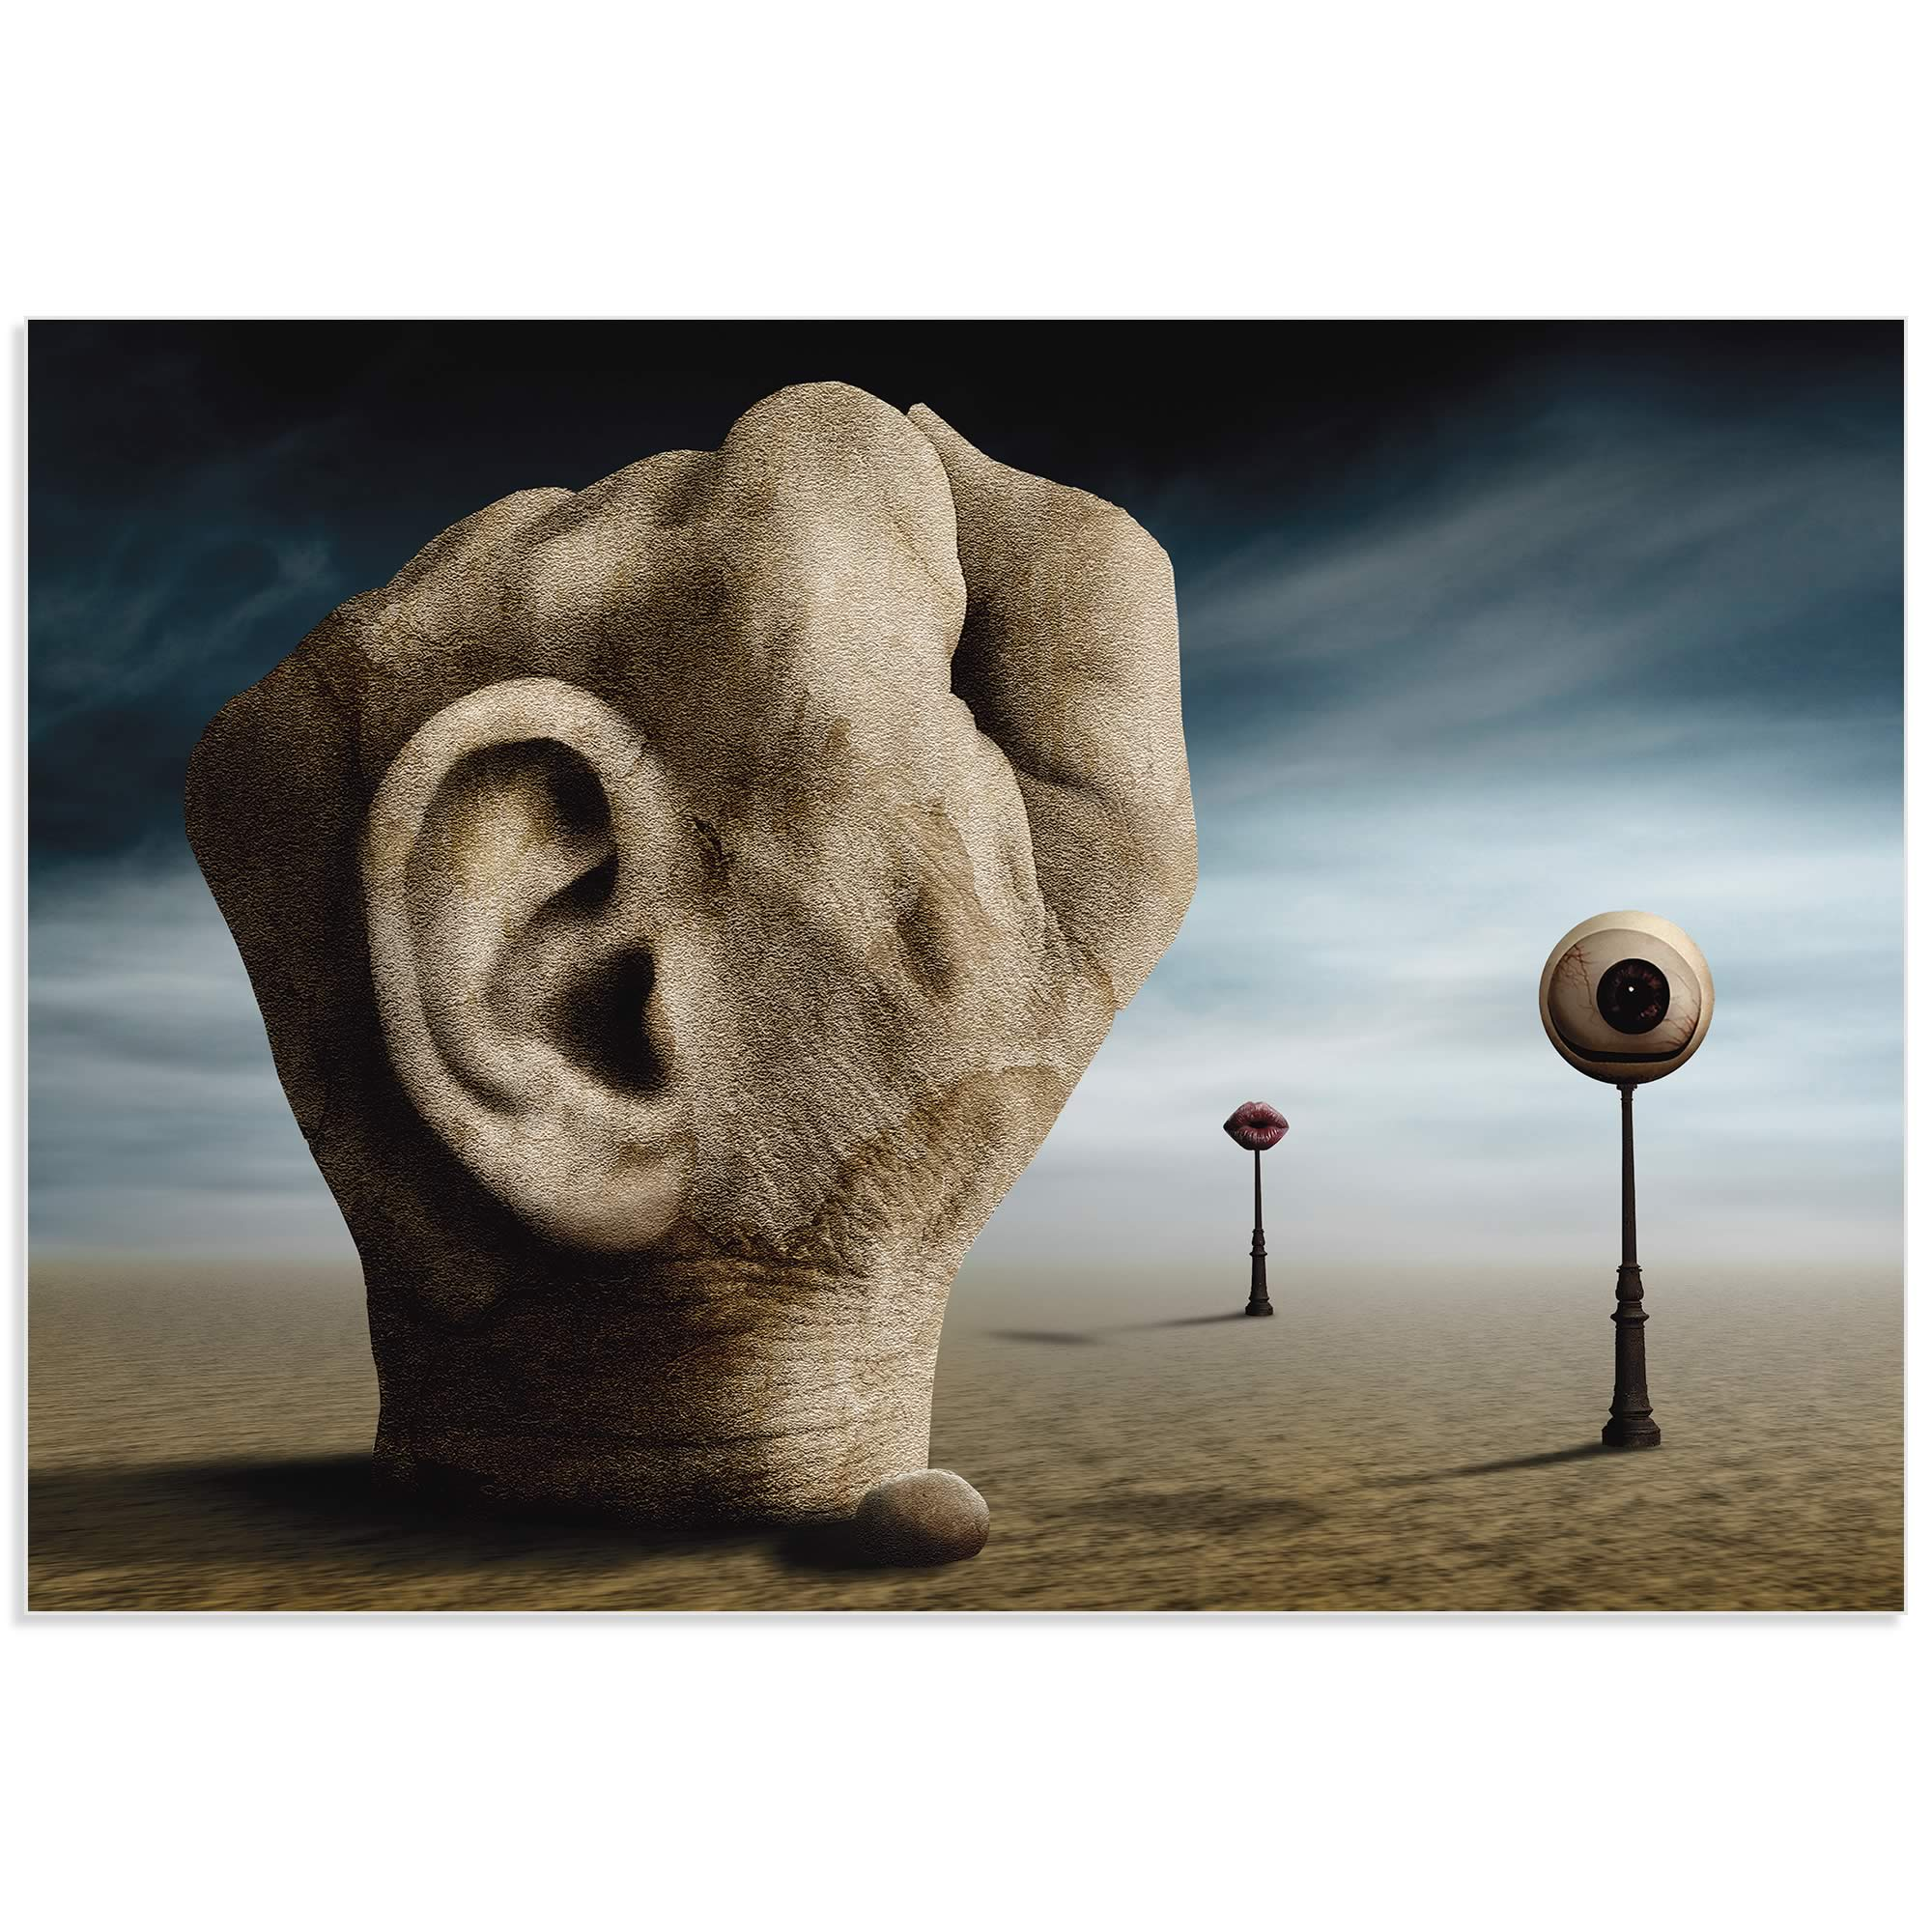 Power of Communication by Ben Goossens - Surreal Figurative Art on Metal or Acrylic - Alternate View 2